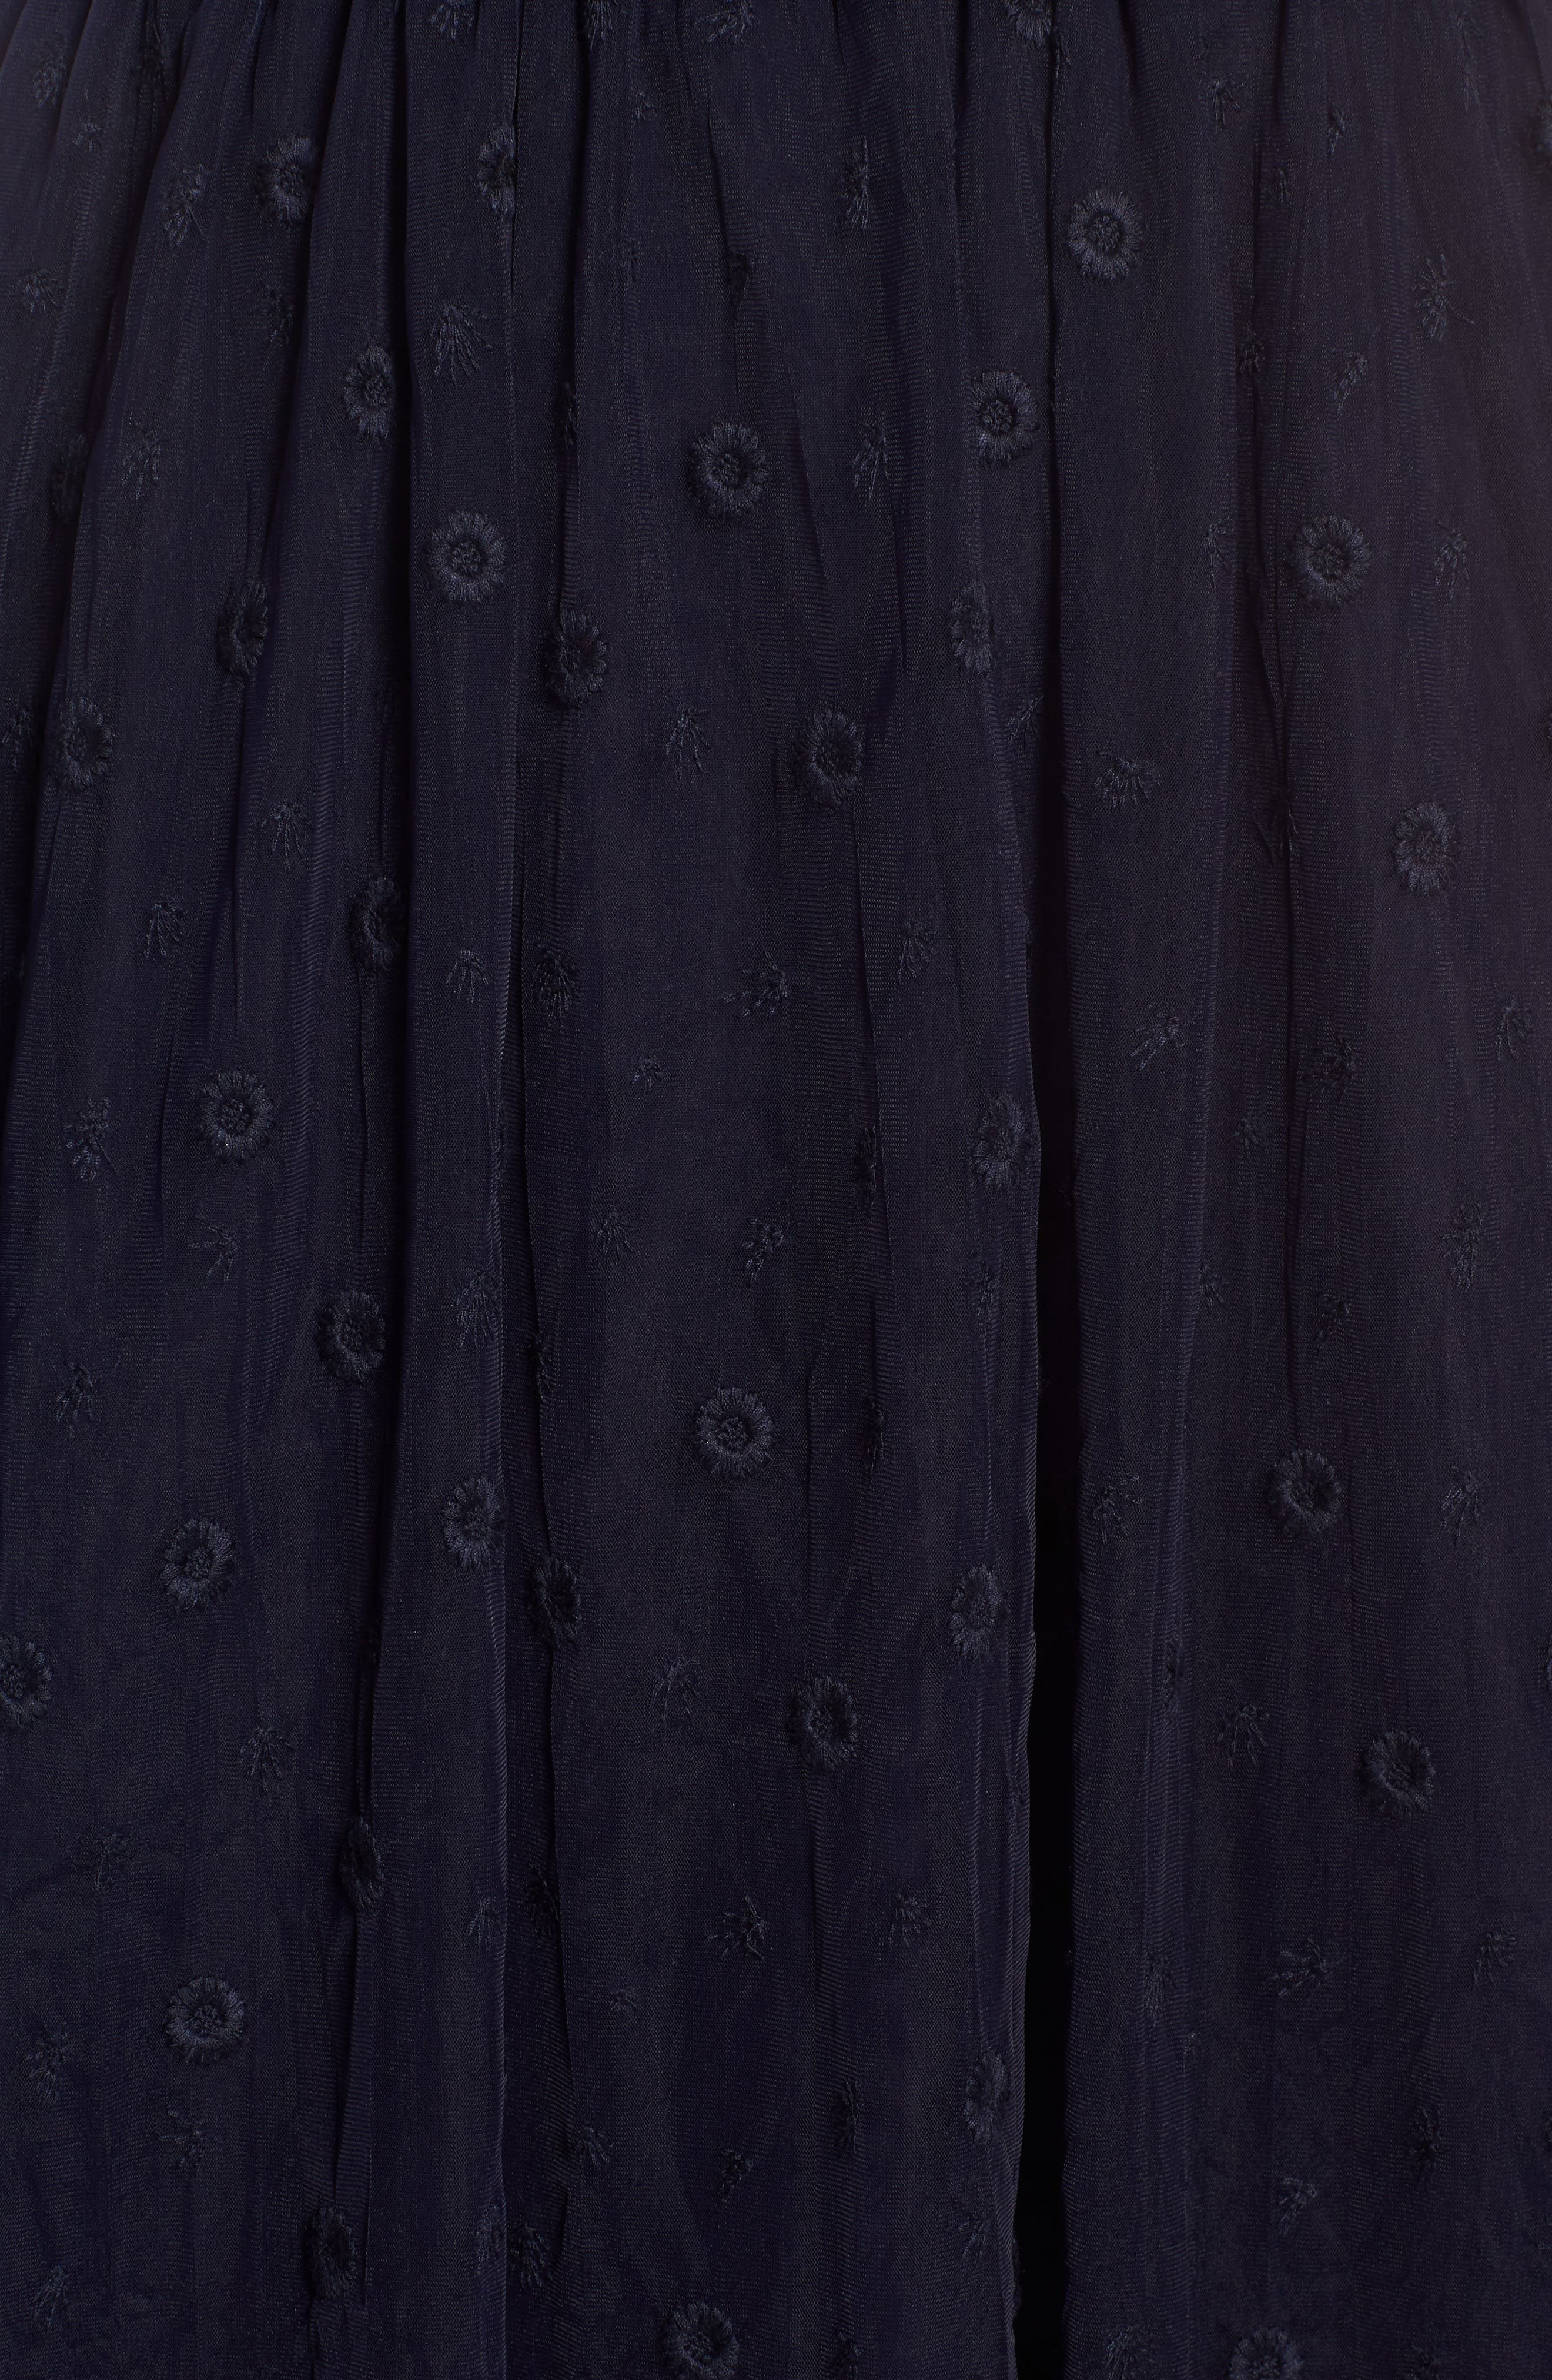 Embroidered Tulle Skirt,                             Alternate thumbnail 5, color,                             Navy Night